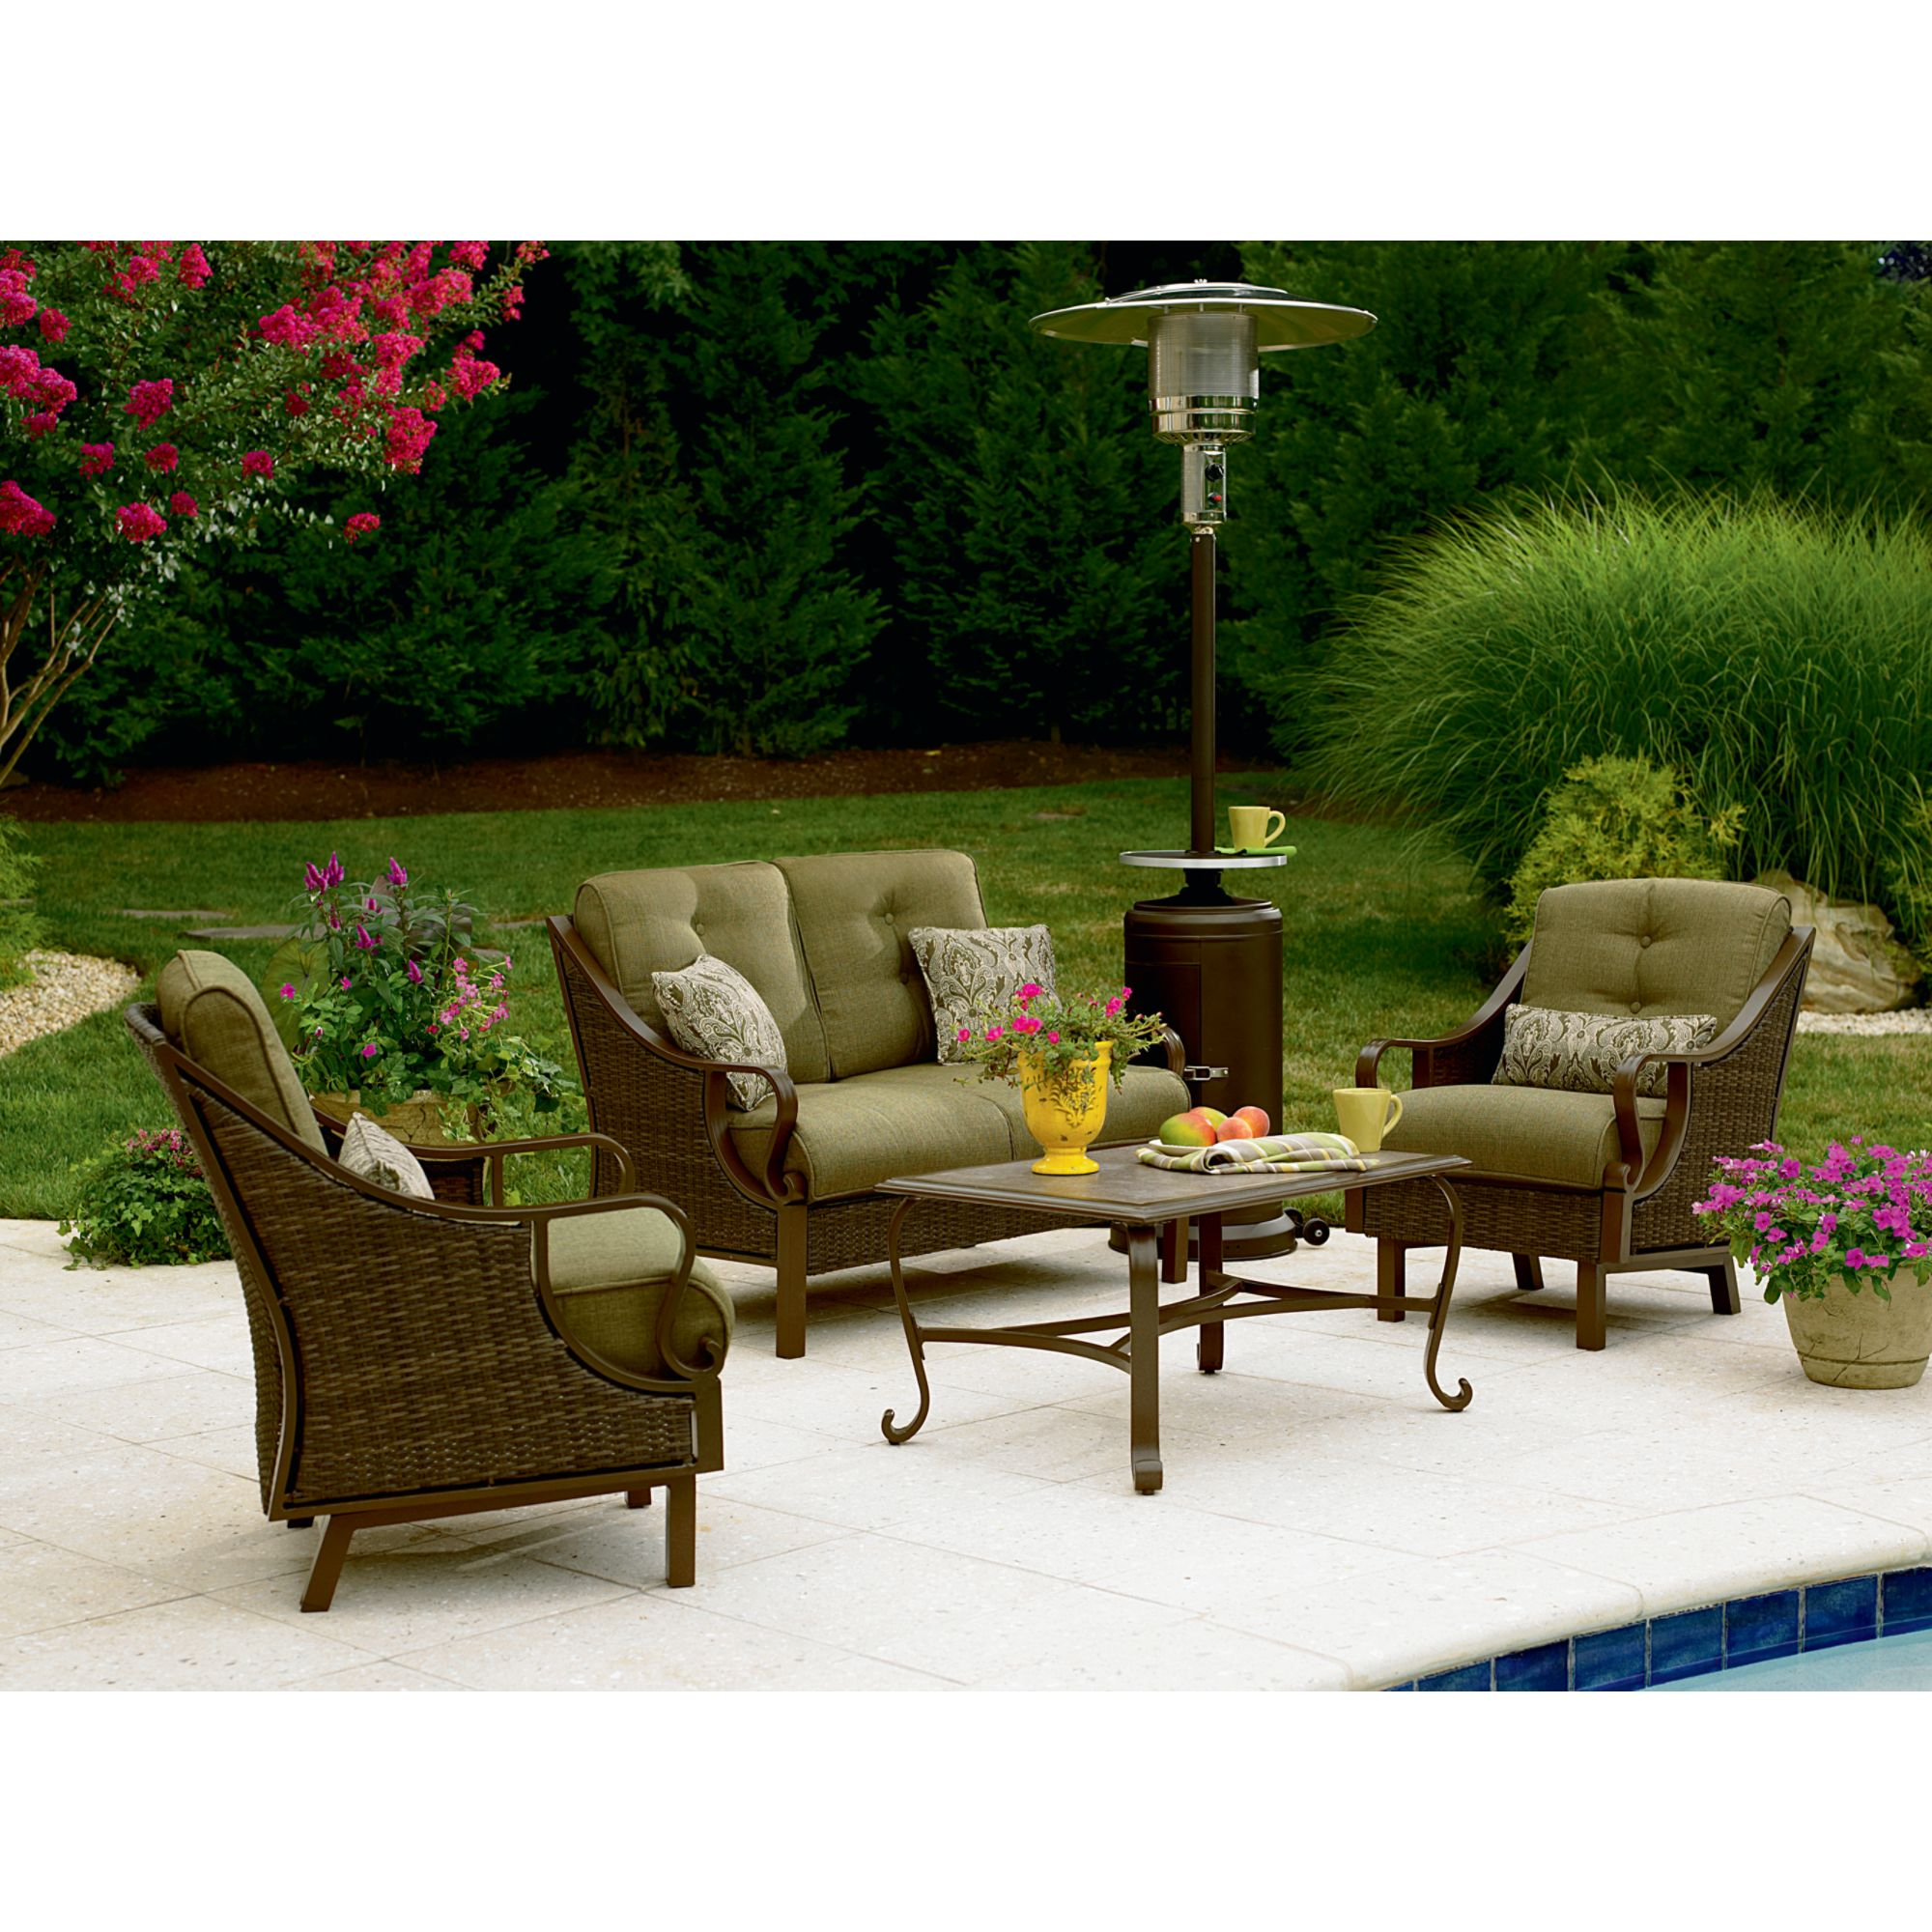 La-Z-Boy Outdoor Peyton 4 Pc. Seating Set* Limited Availability